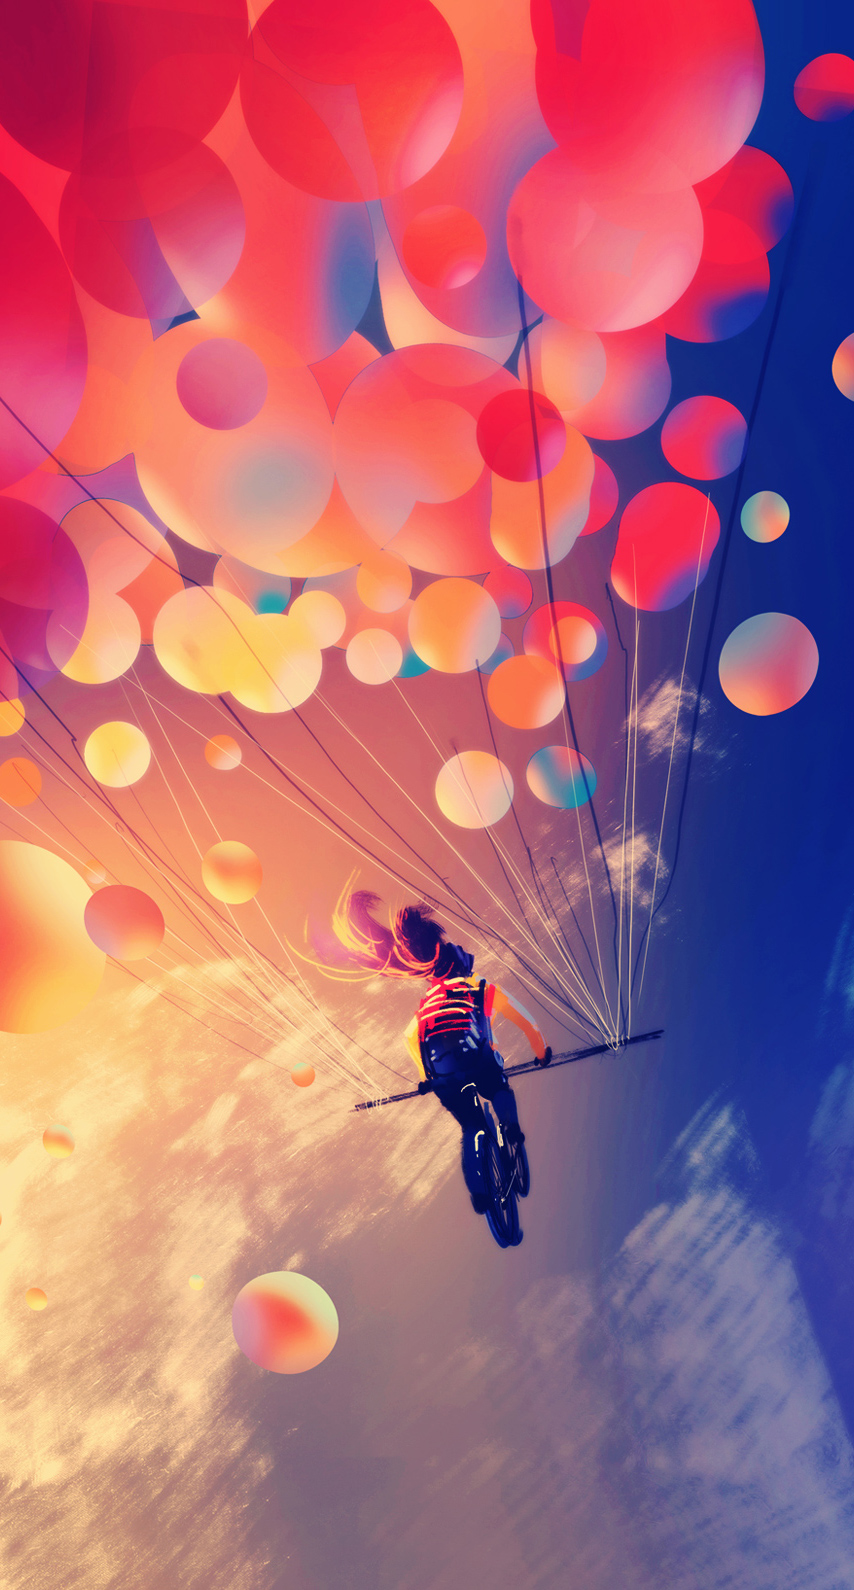 sunlight, parachuting